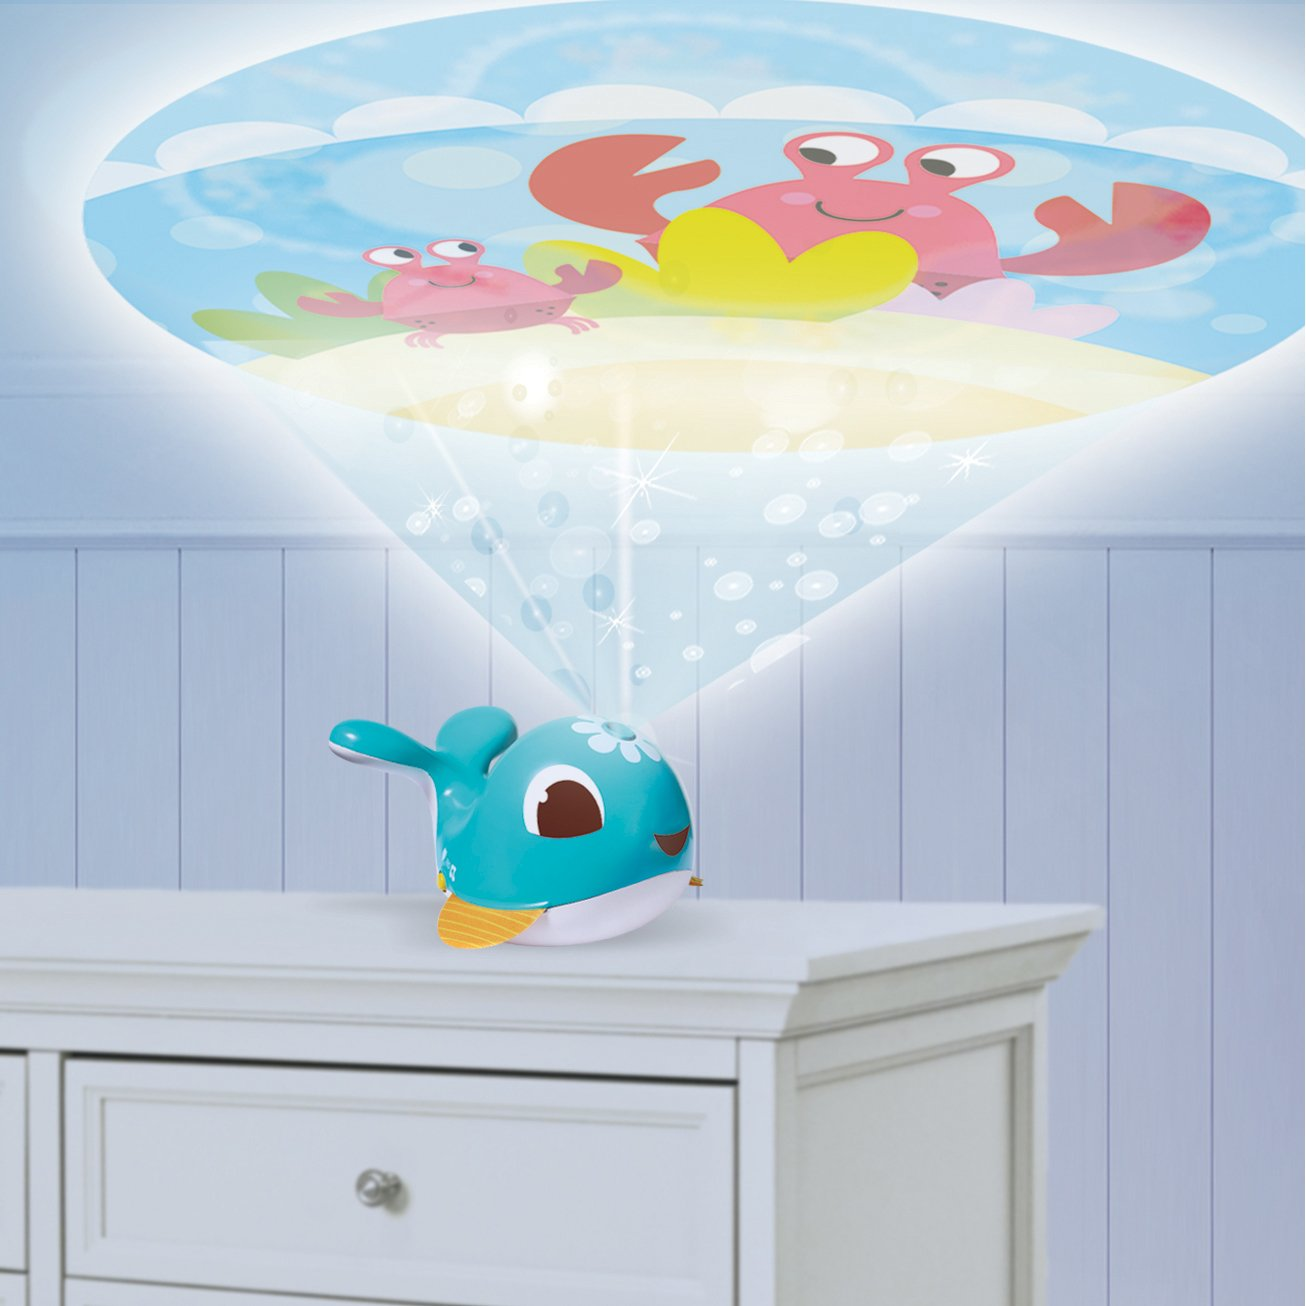 Cody TO016-0700 Tiny Love Take-Along Projector Soother